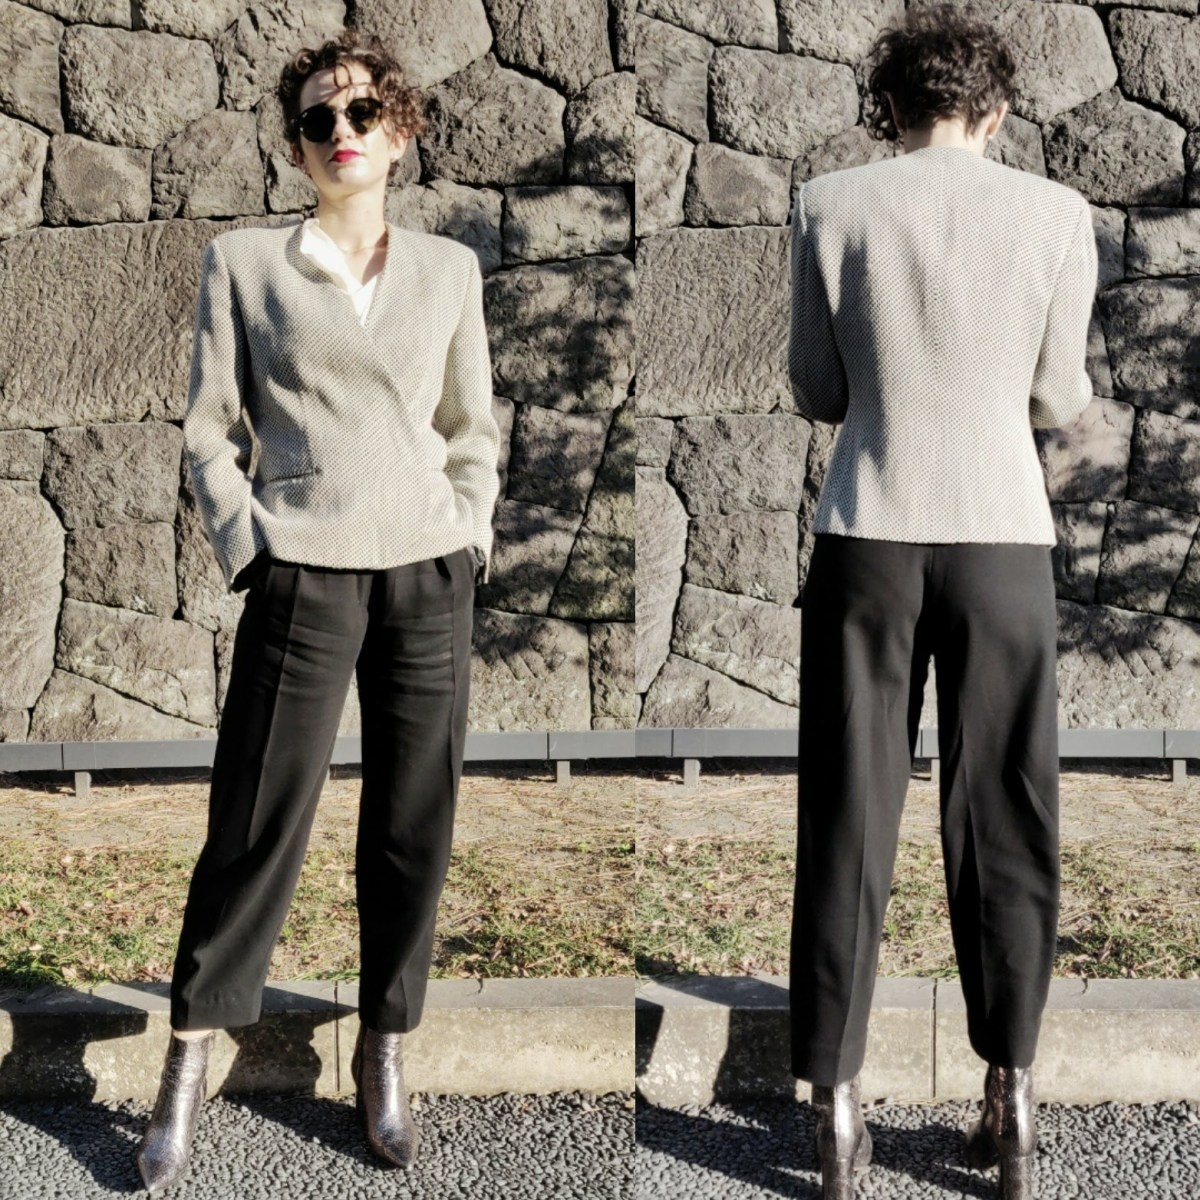 Front and back views of Emilia wearing the same trousers and boots, but with a grey blazer with dramatic shoulders